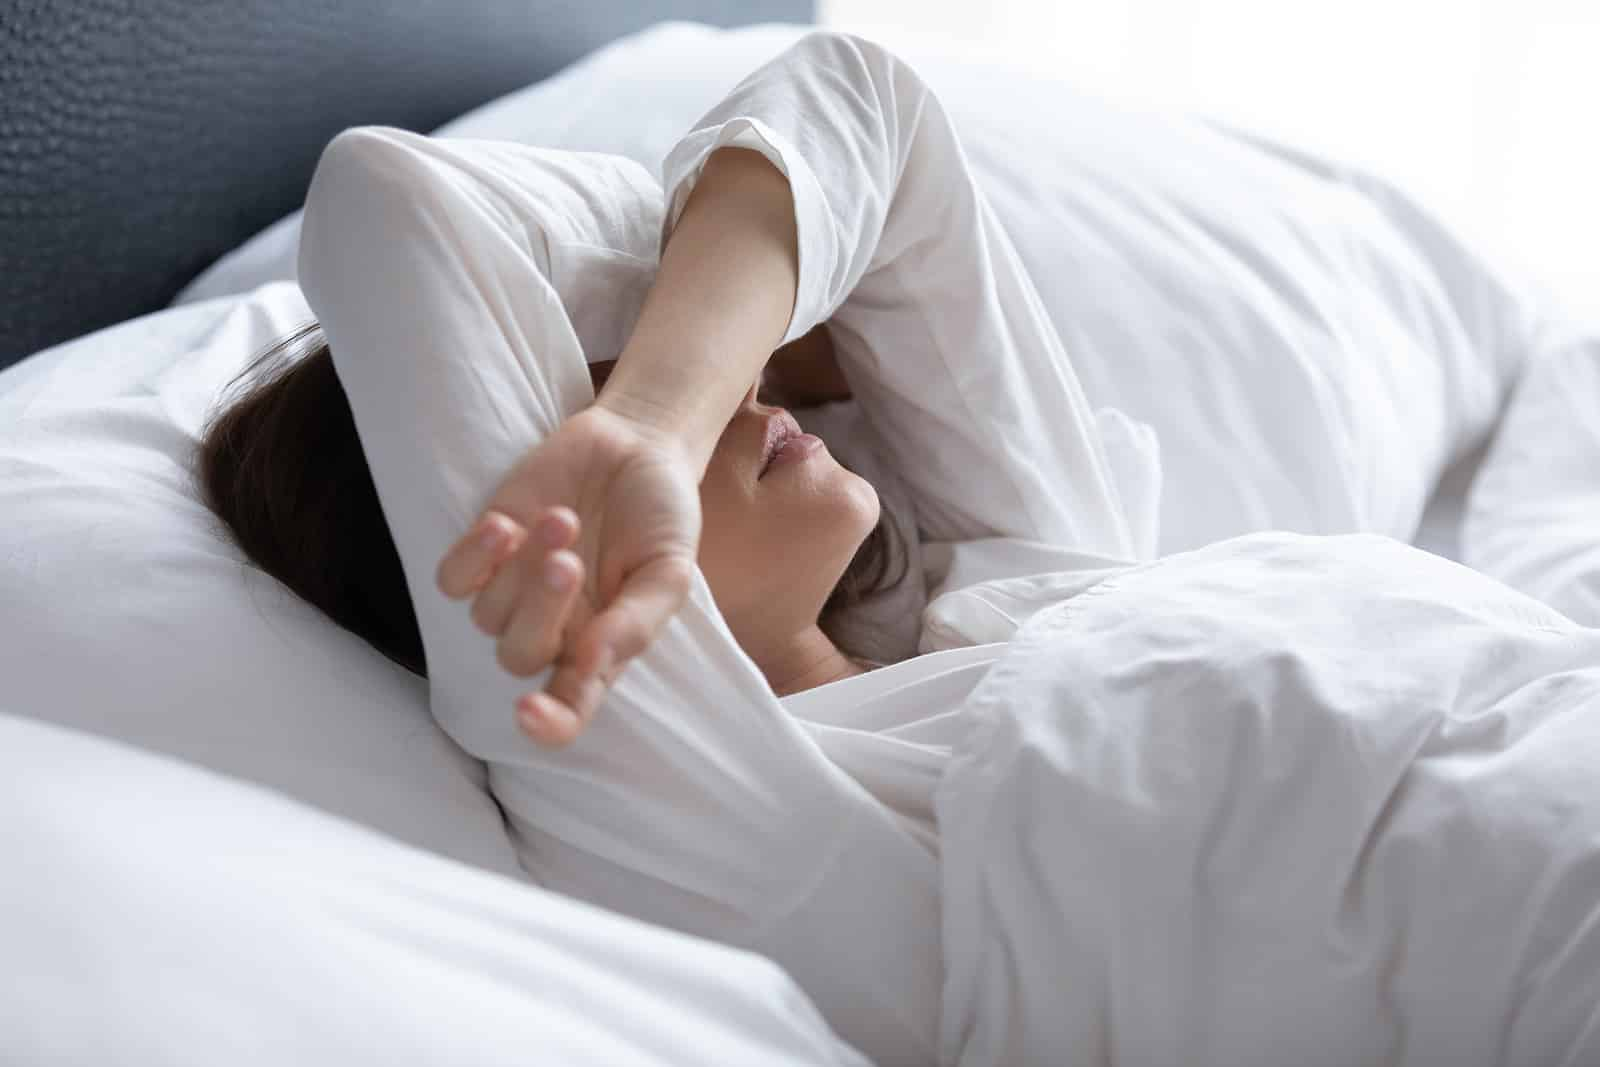 Can hormones cause insomnia? Yes, big time